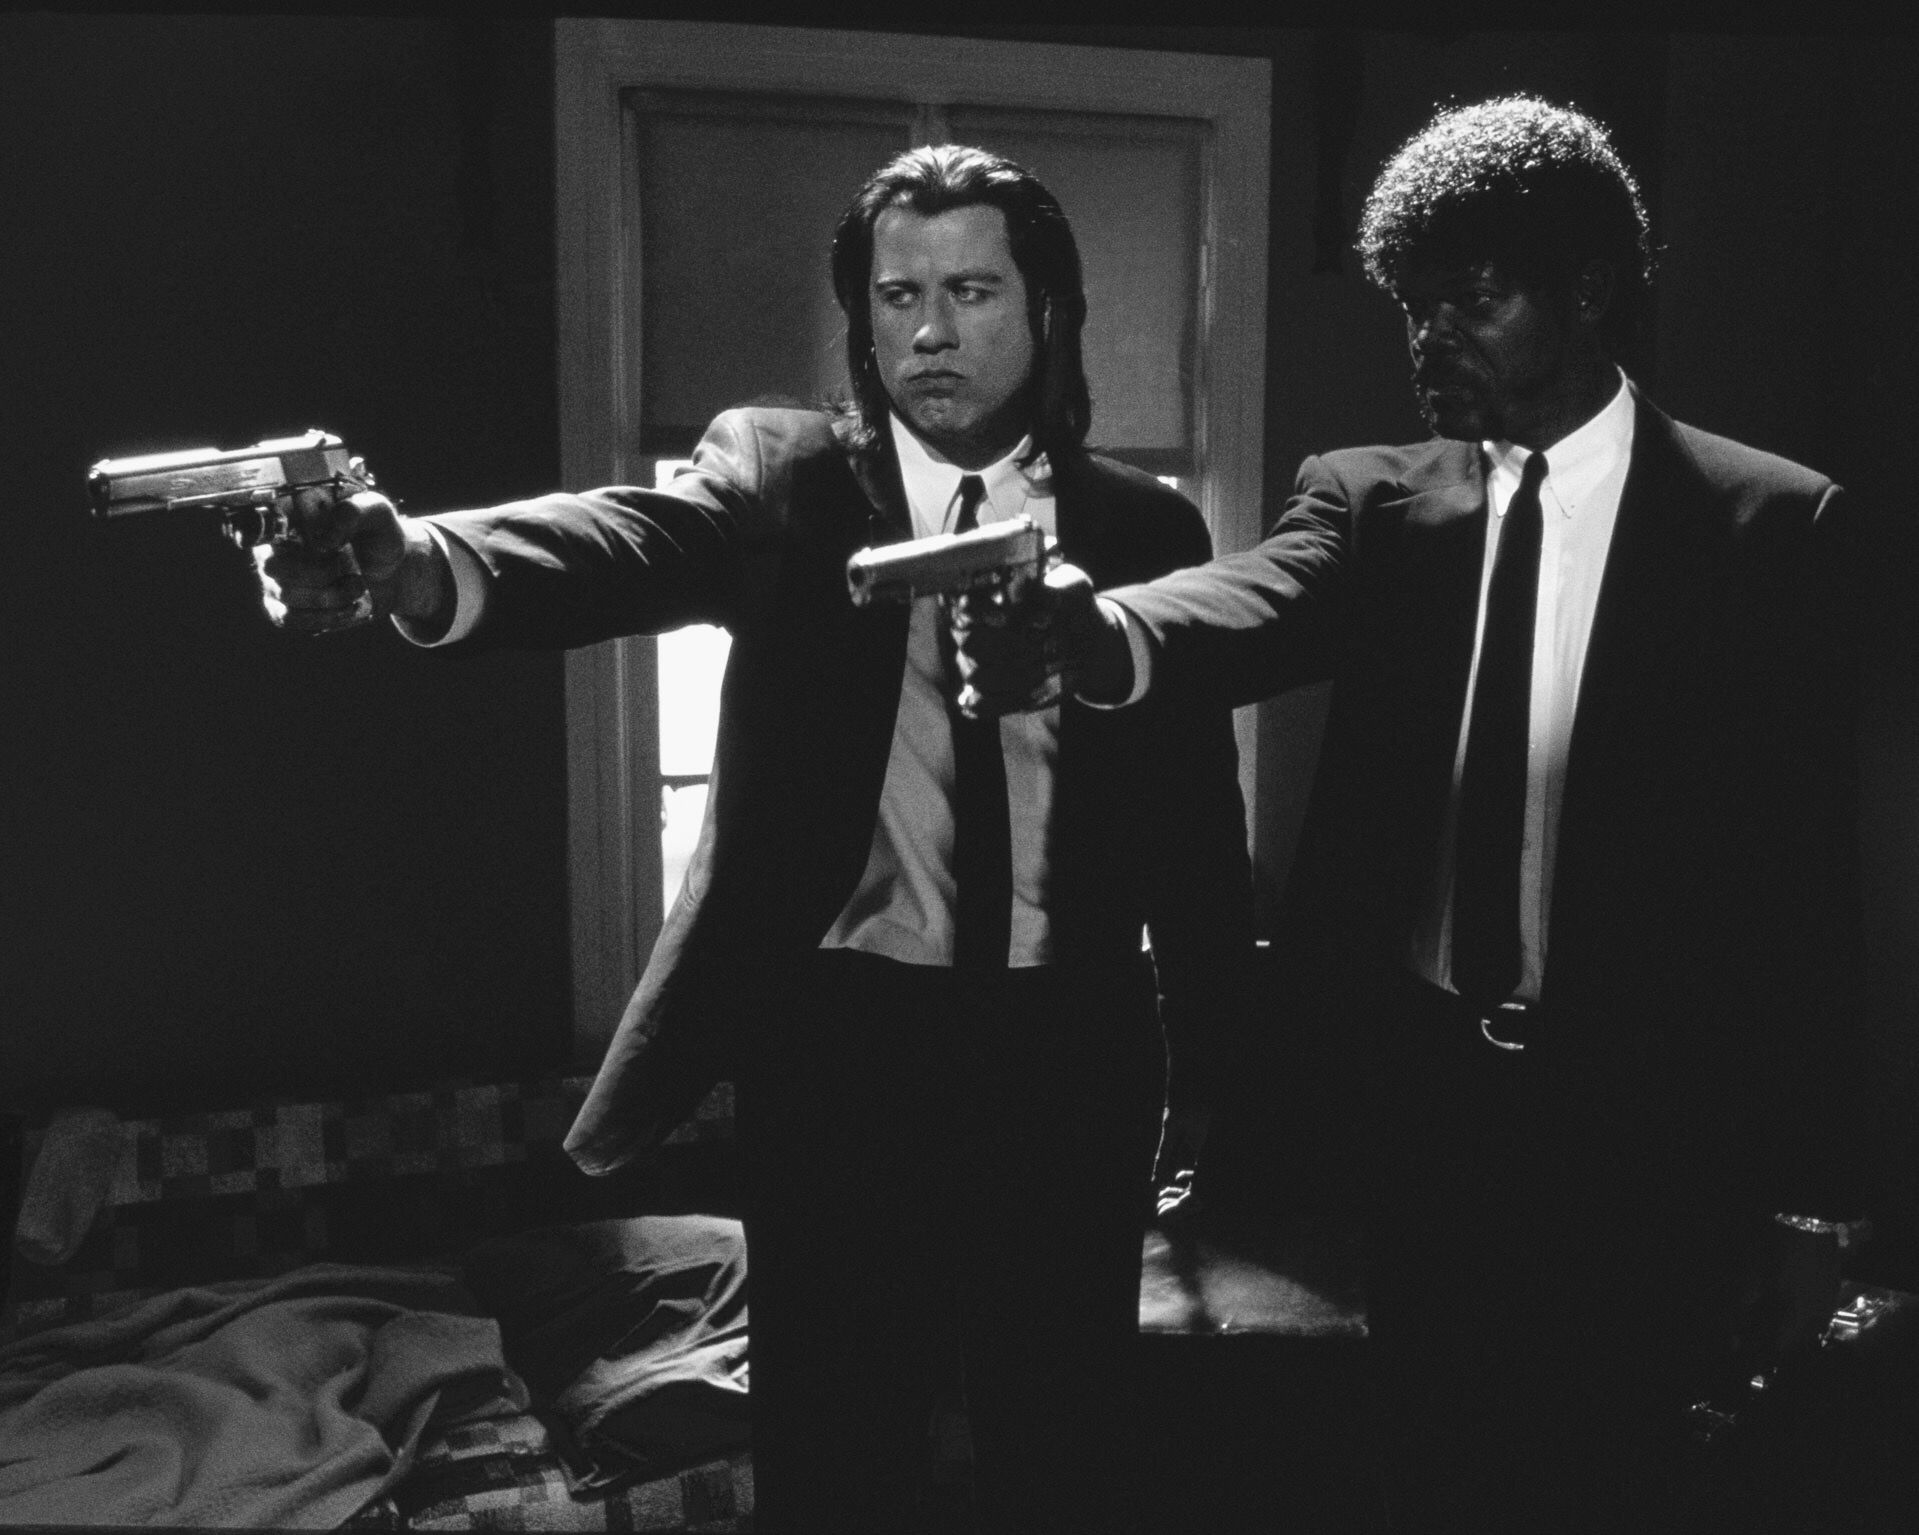 Pulp fiction Famous movie scenes, Pulp fiction, Iconic